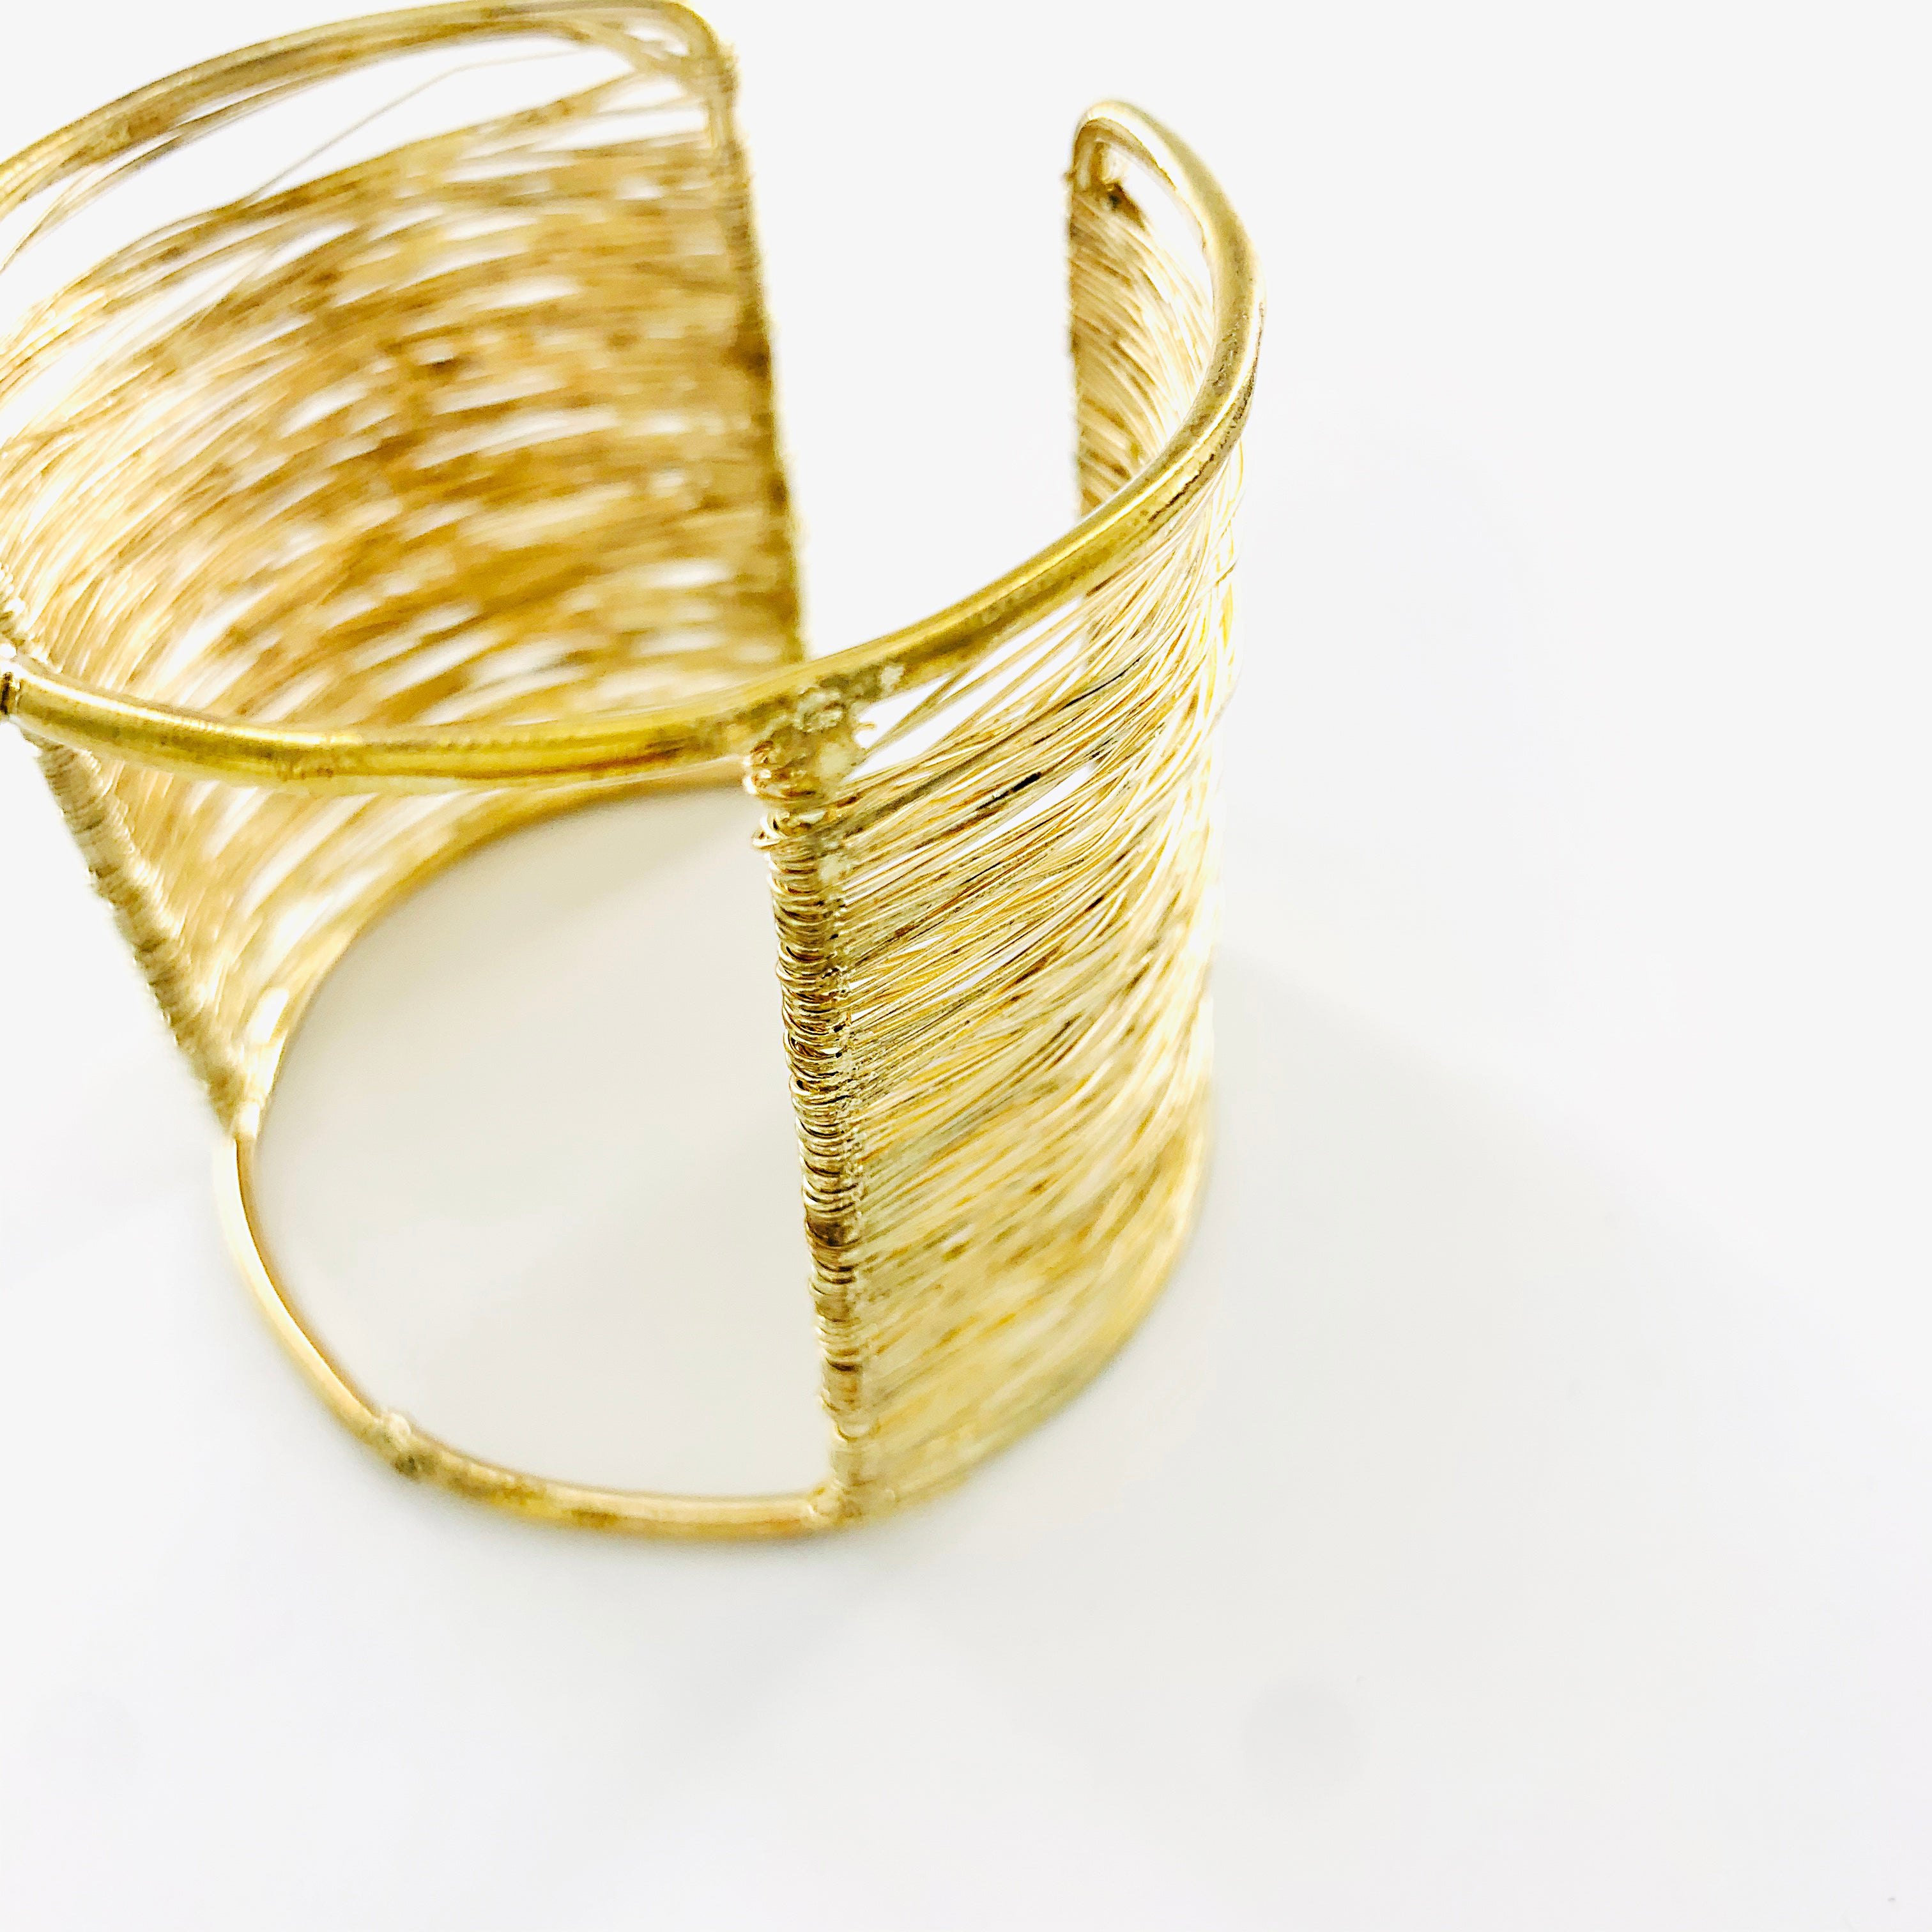 Gold cuff with twisted mesh design